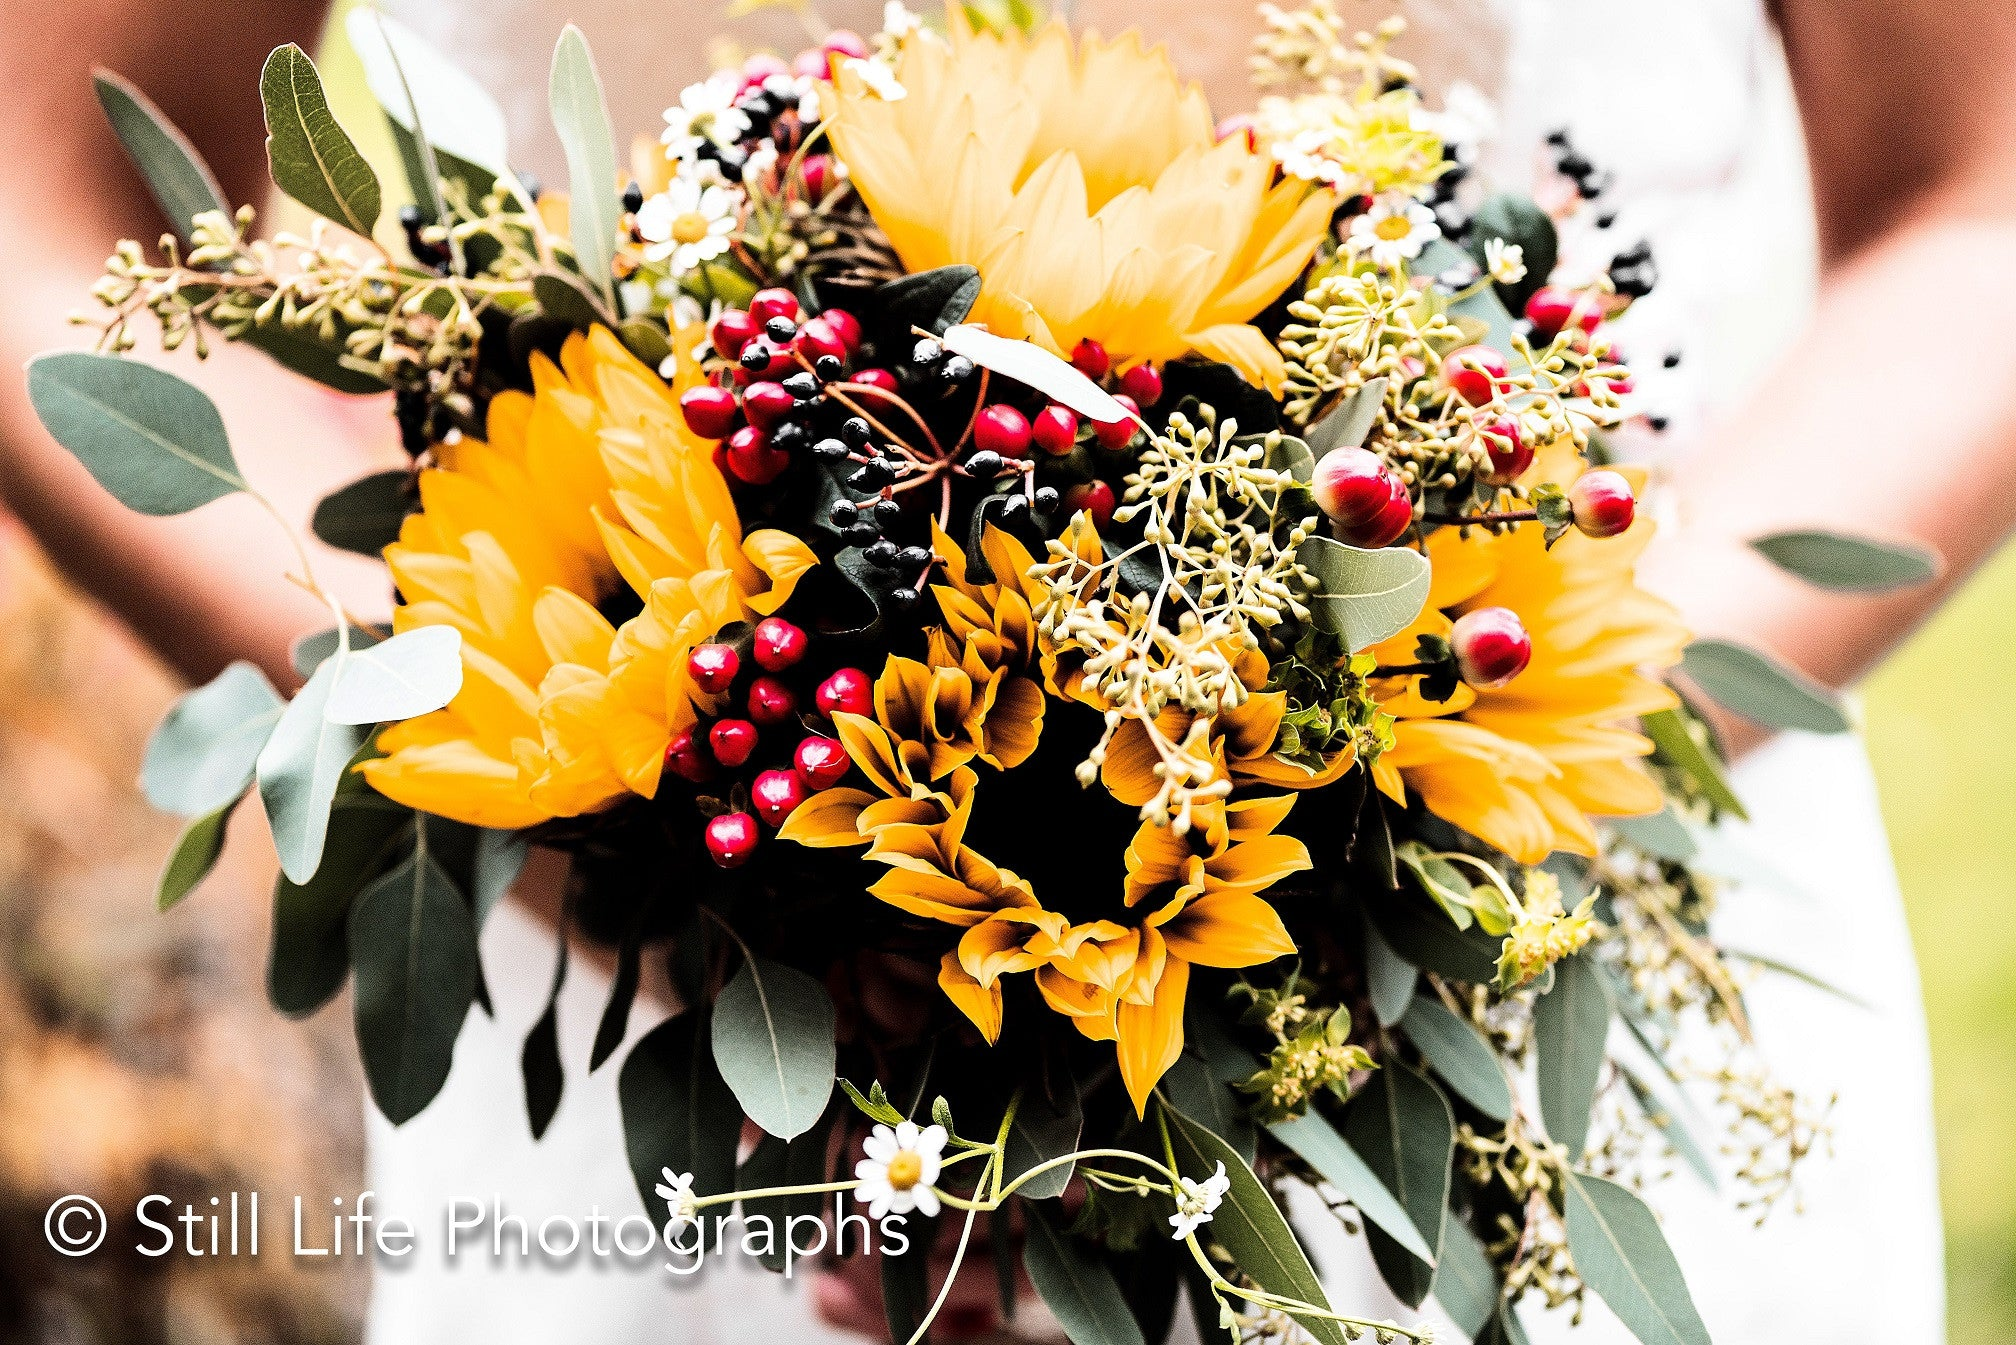 Autumnal bridal bouquet with yellow Sunflowers and red Rosehip berries.